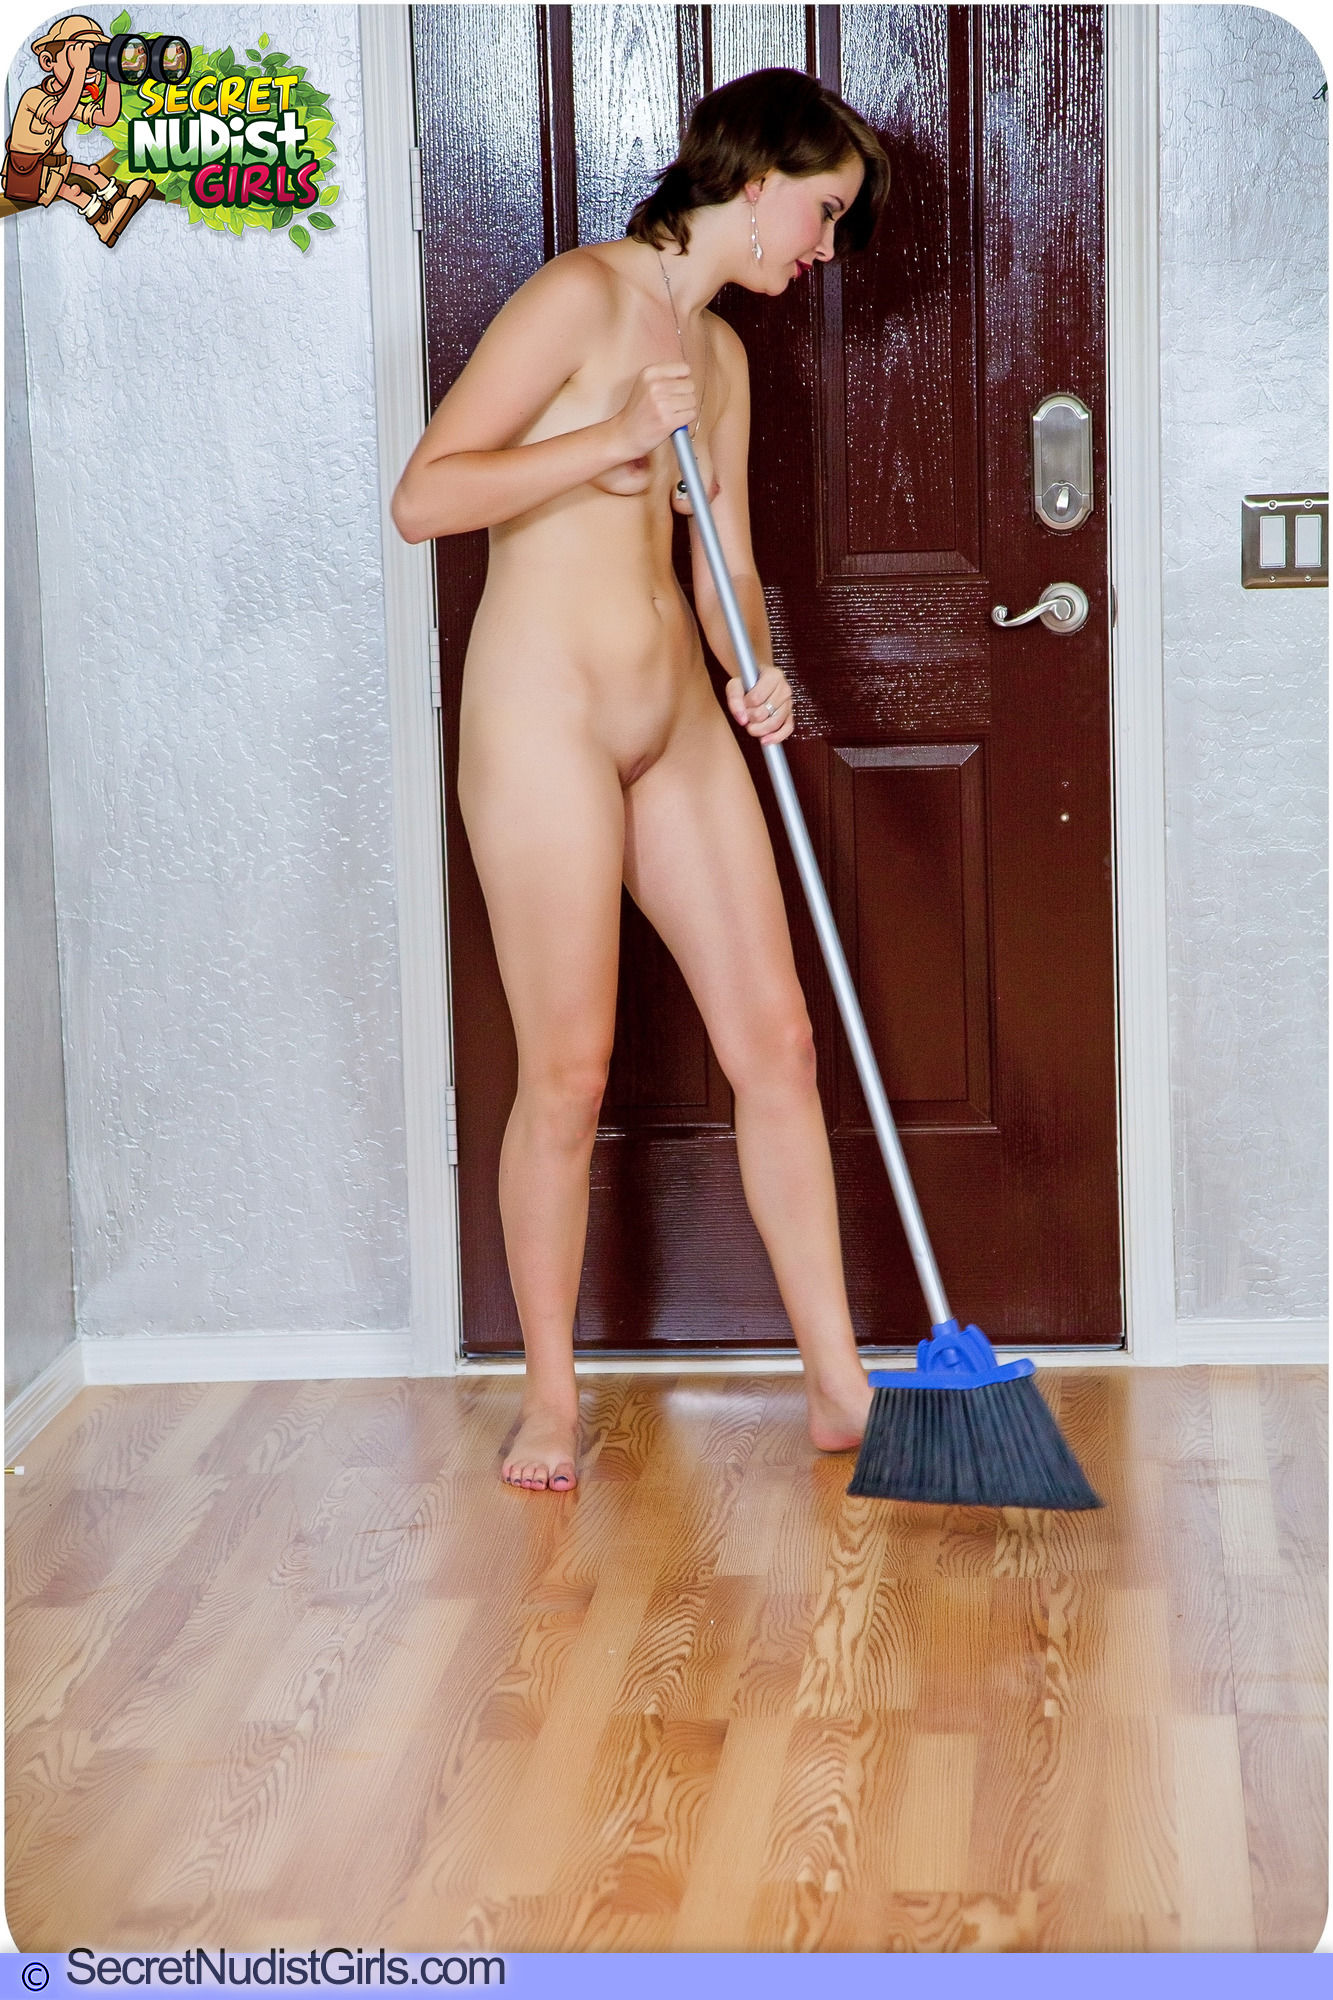 Were not nude girls cleaning house was